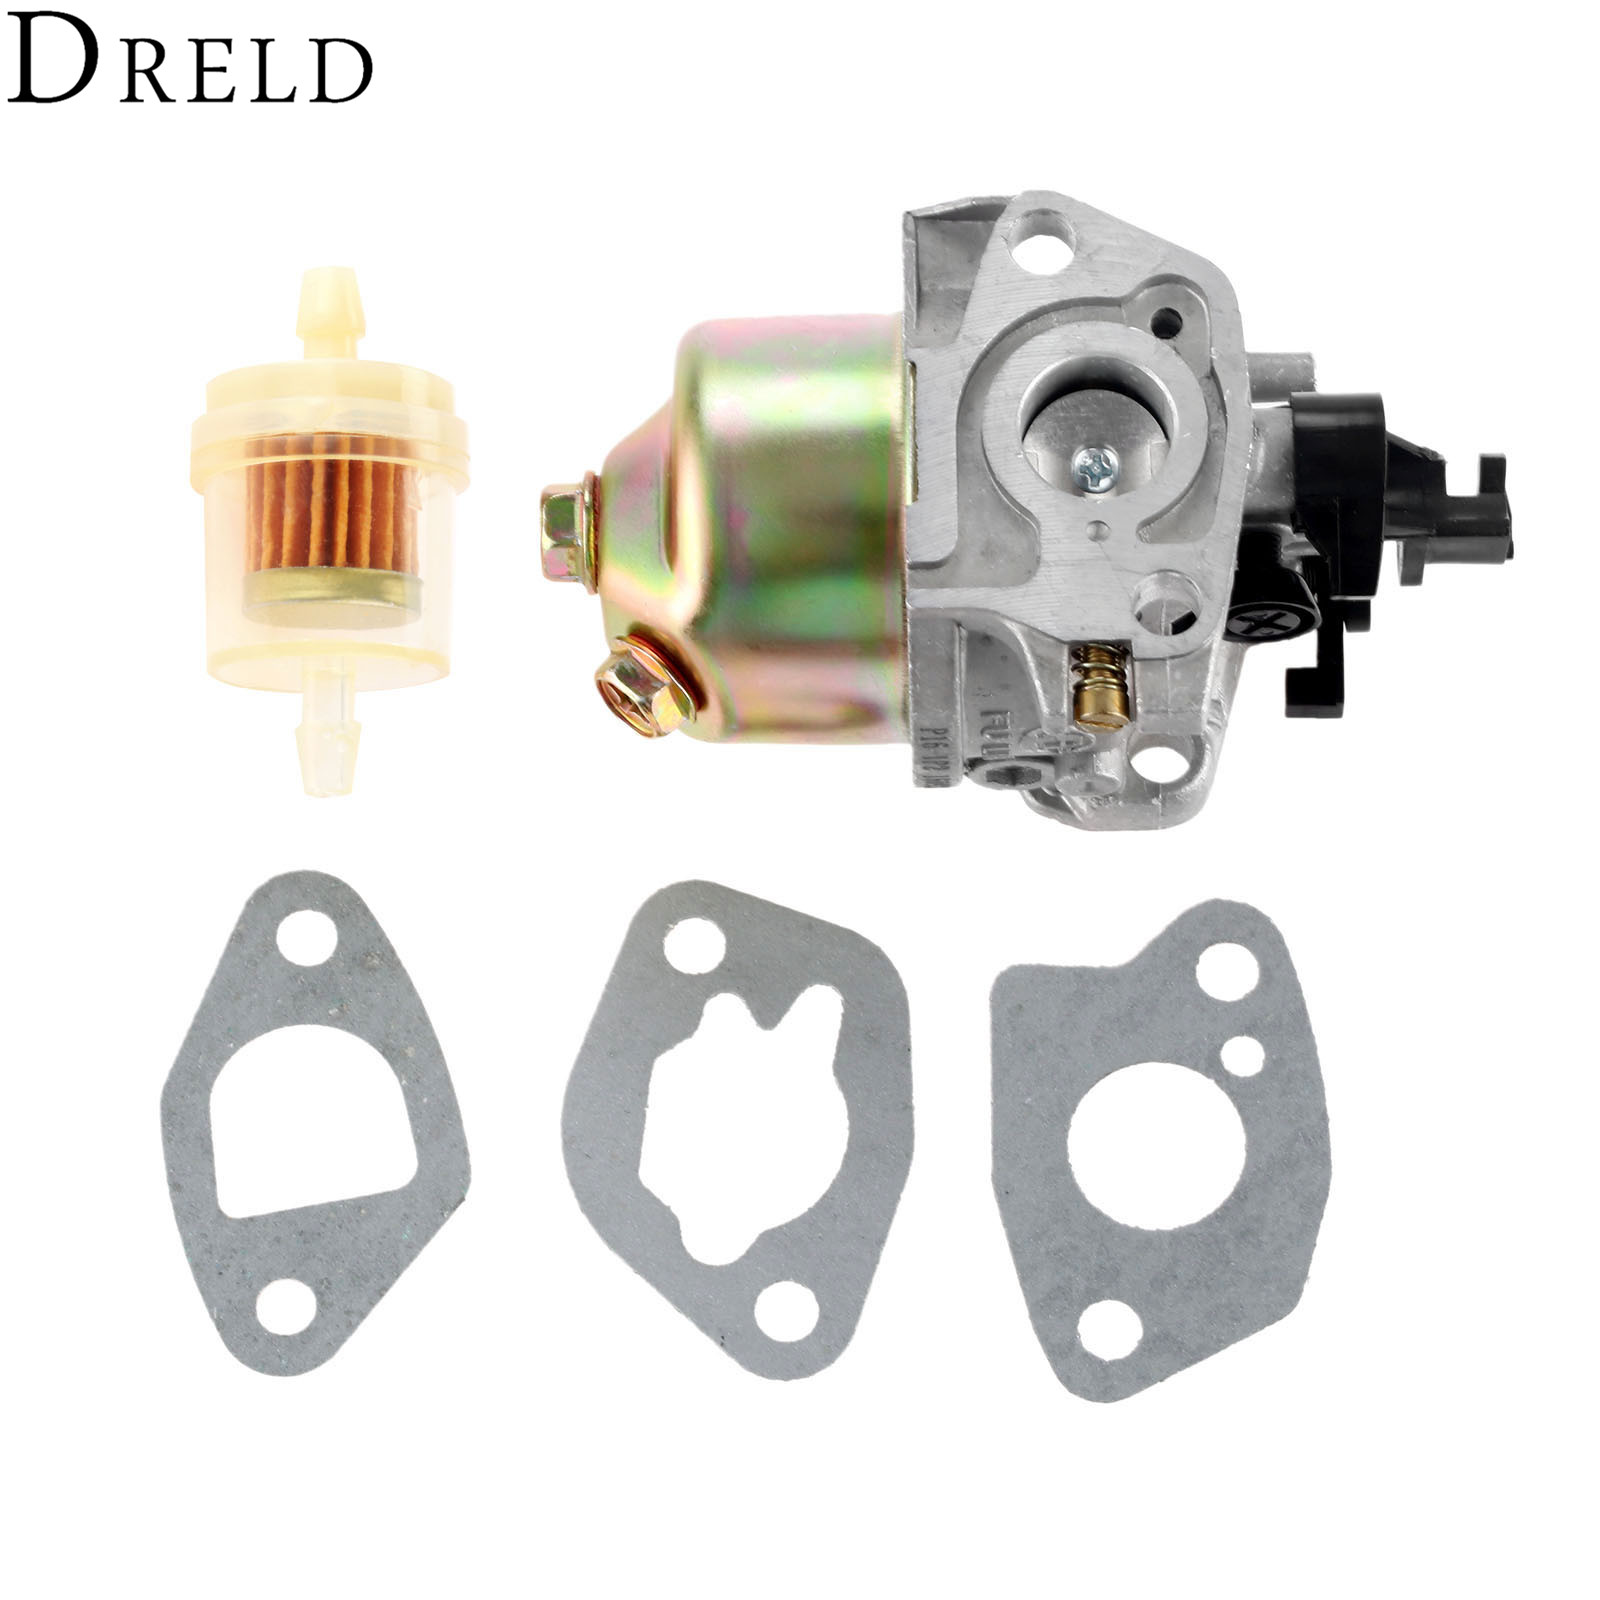 цена на DRELD Carburetor with Carburetor Gasket Fuel Filter for MTD Cub Cadet Troy-Bilt Lawn Mower Engines # 951-10310 751-10310